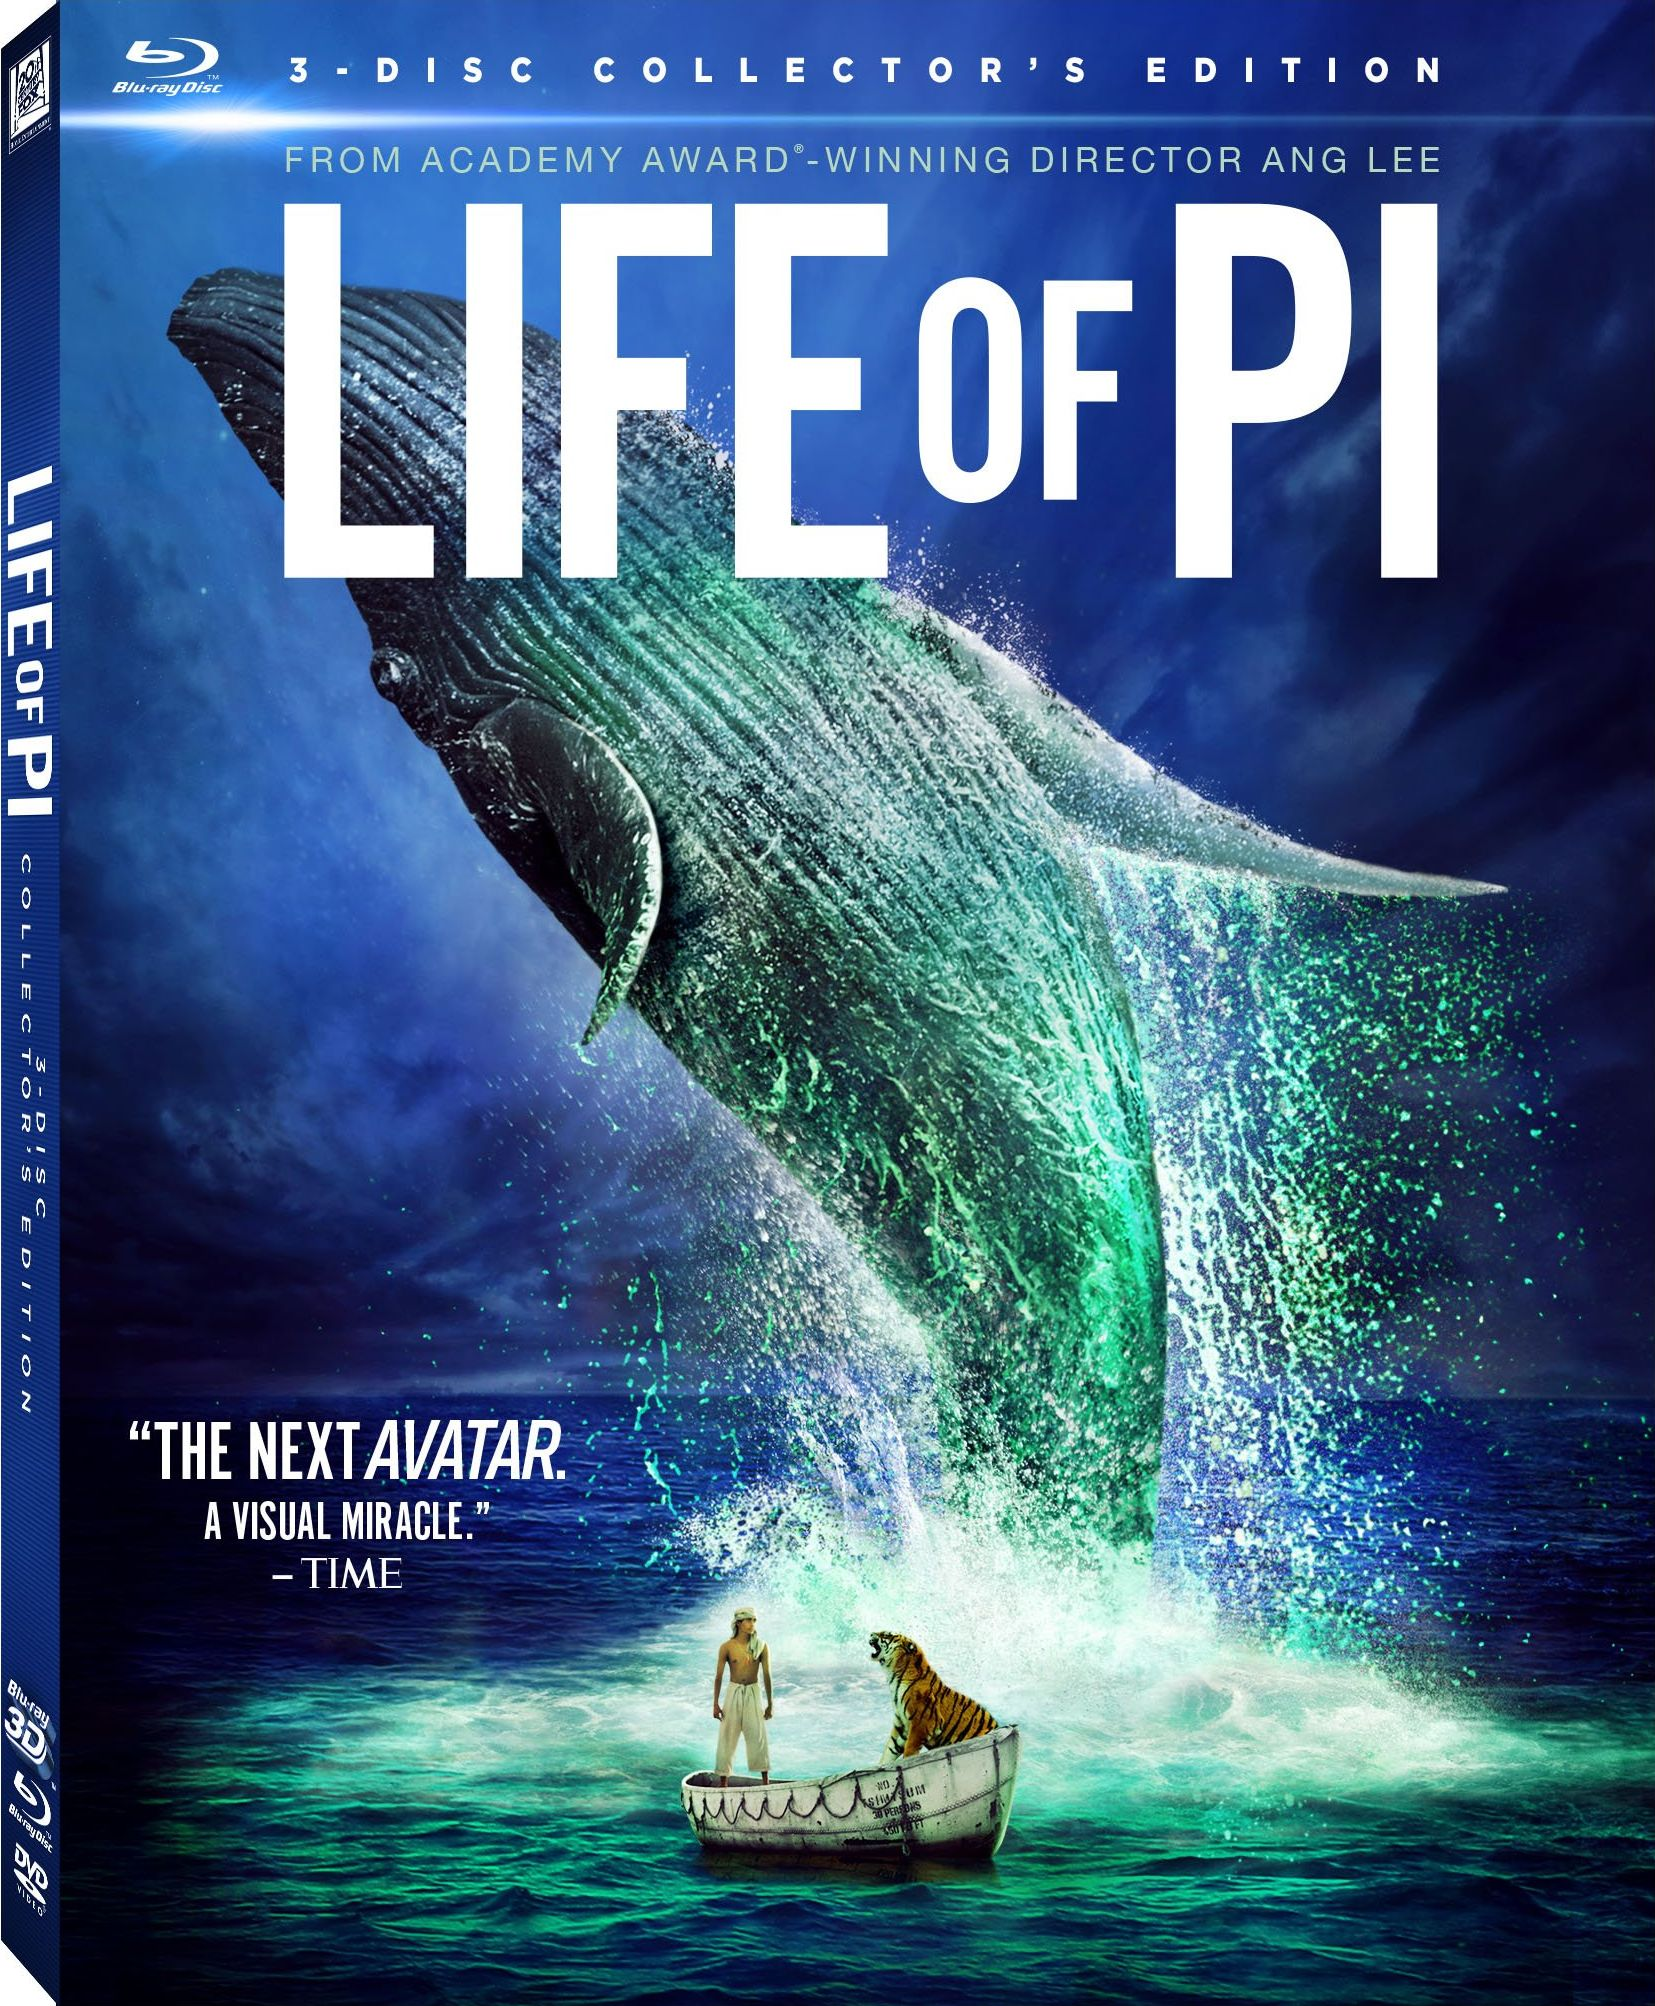 life of pi response Ang lee's life of pi is a miraculous achievement of storytelling and a landmark of visual mastery inspired by a worldwide best-seller that many readers must have assumed was unfilmable.